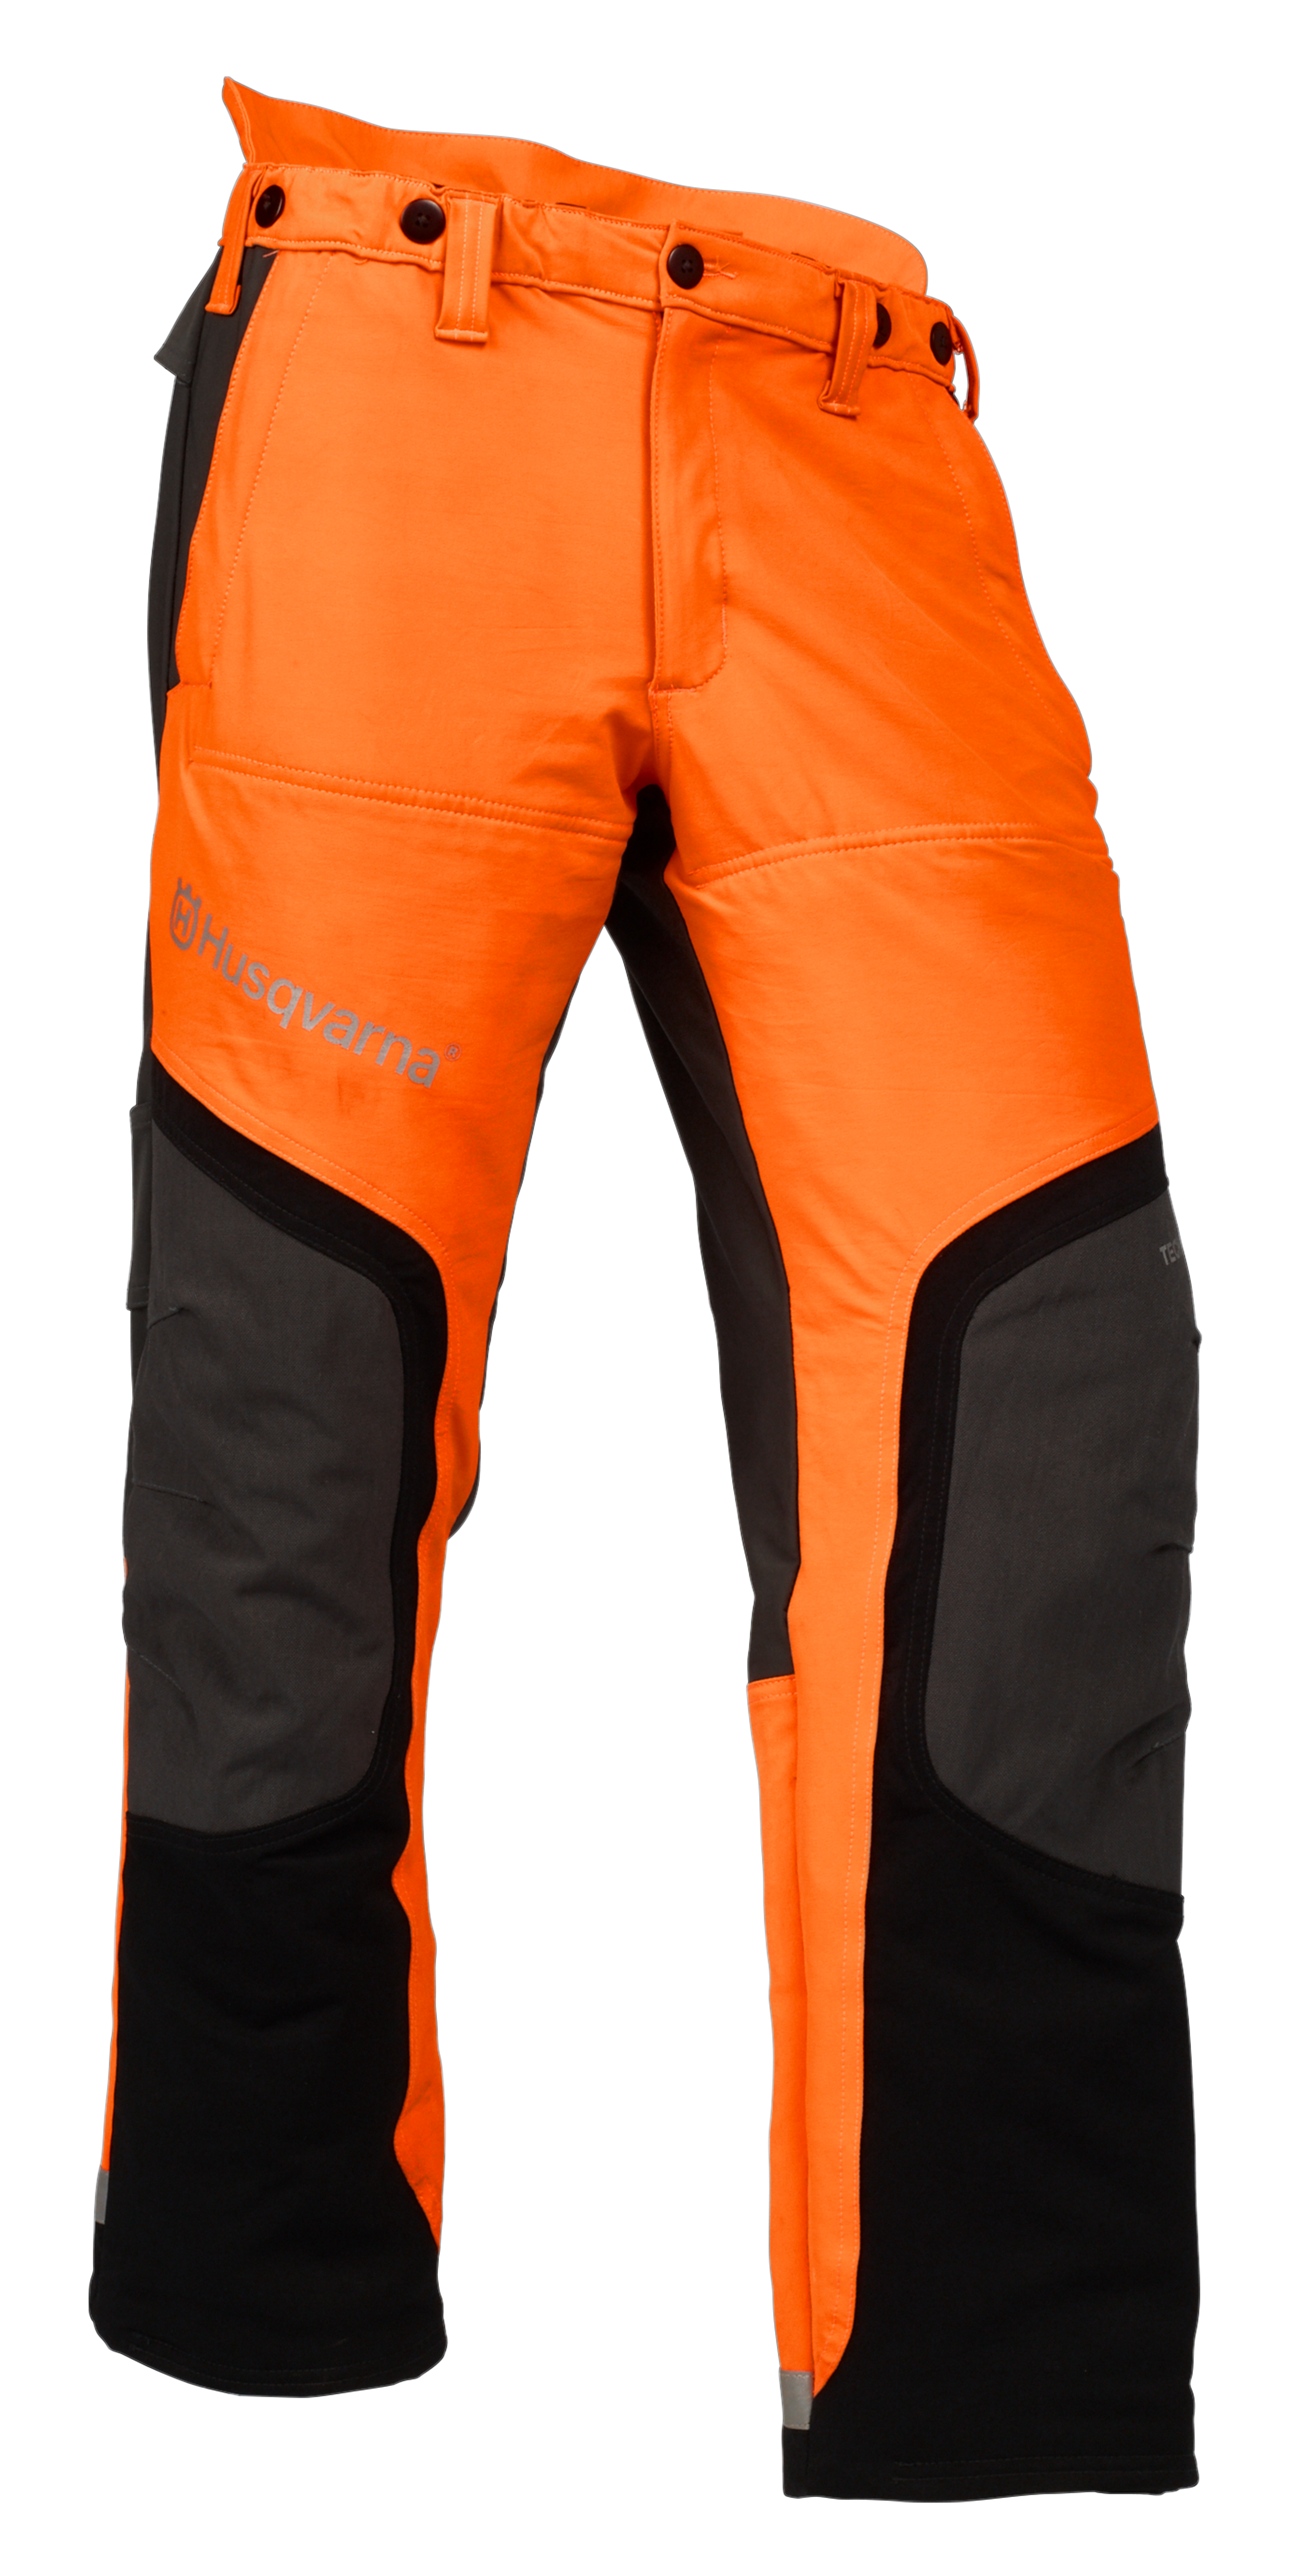 Image for Technical Hi-Viz Chainsaw Pants                                                                                                  from HusqvarnaB2C